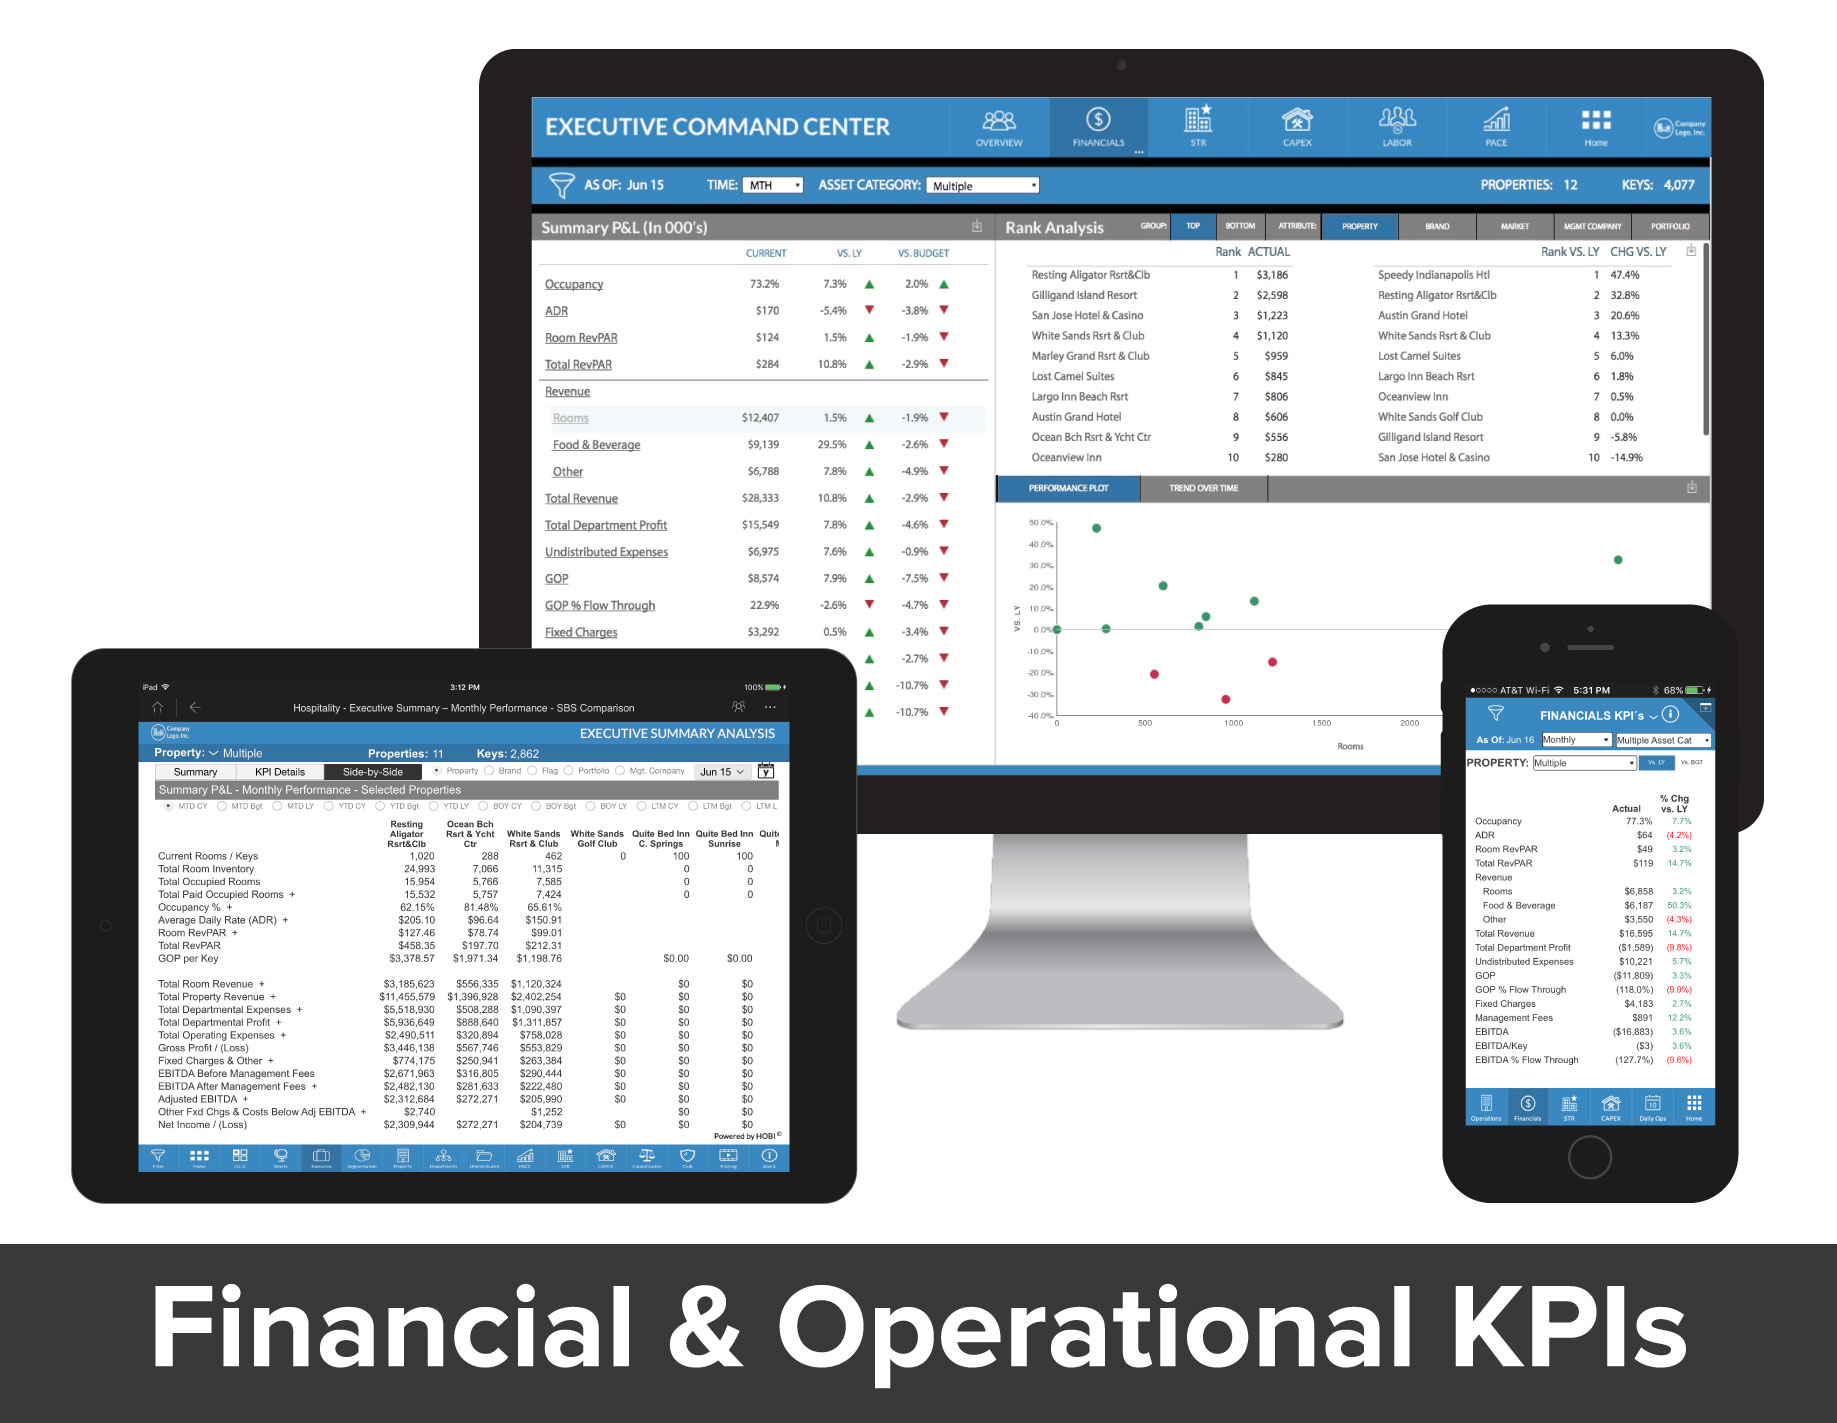 Gallery_5_Financial-&-Operational-KPIs.jpg